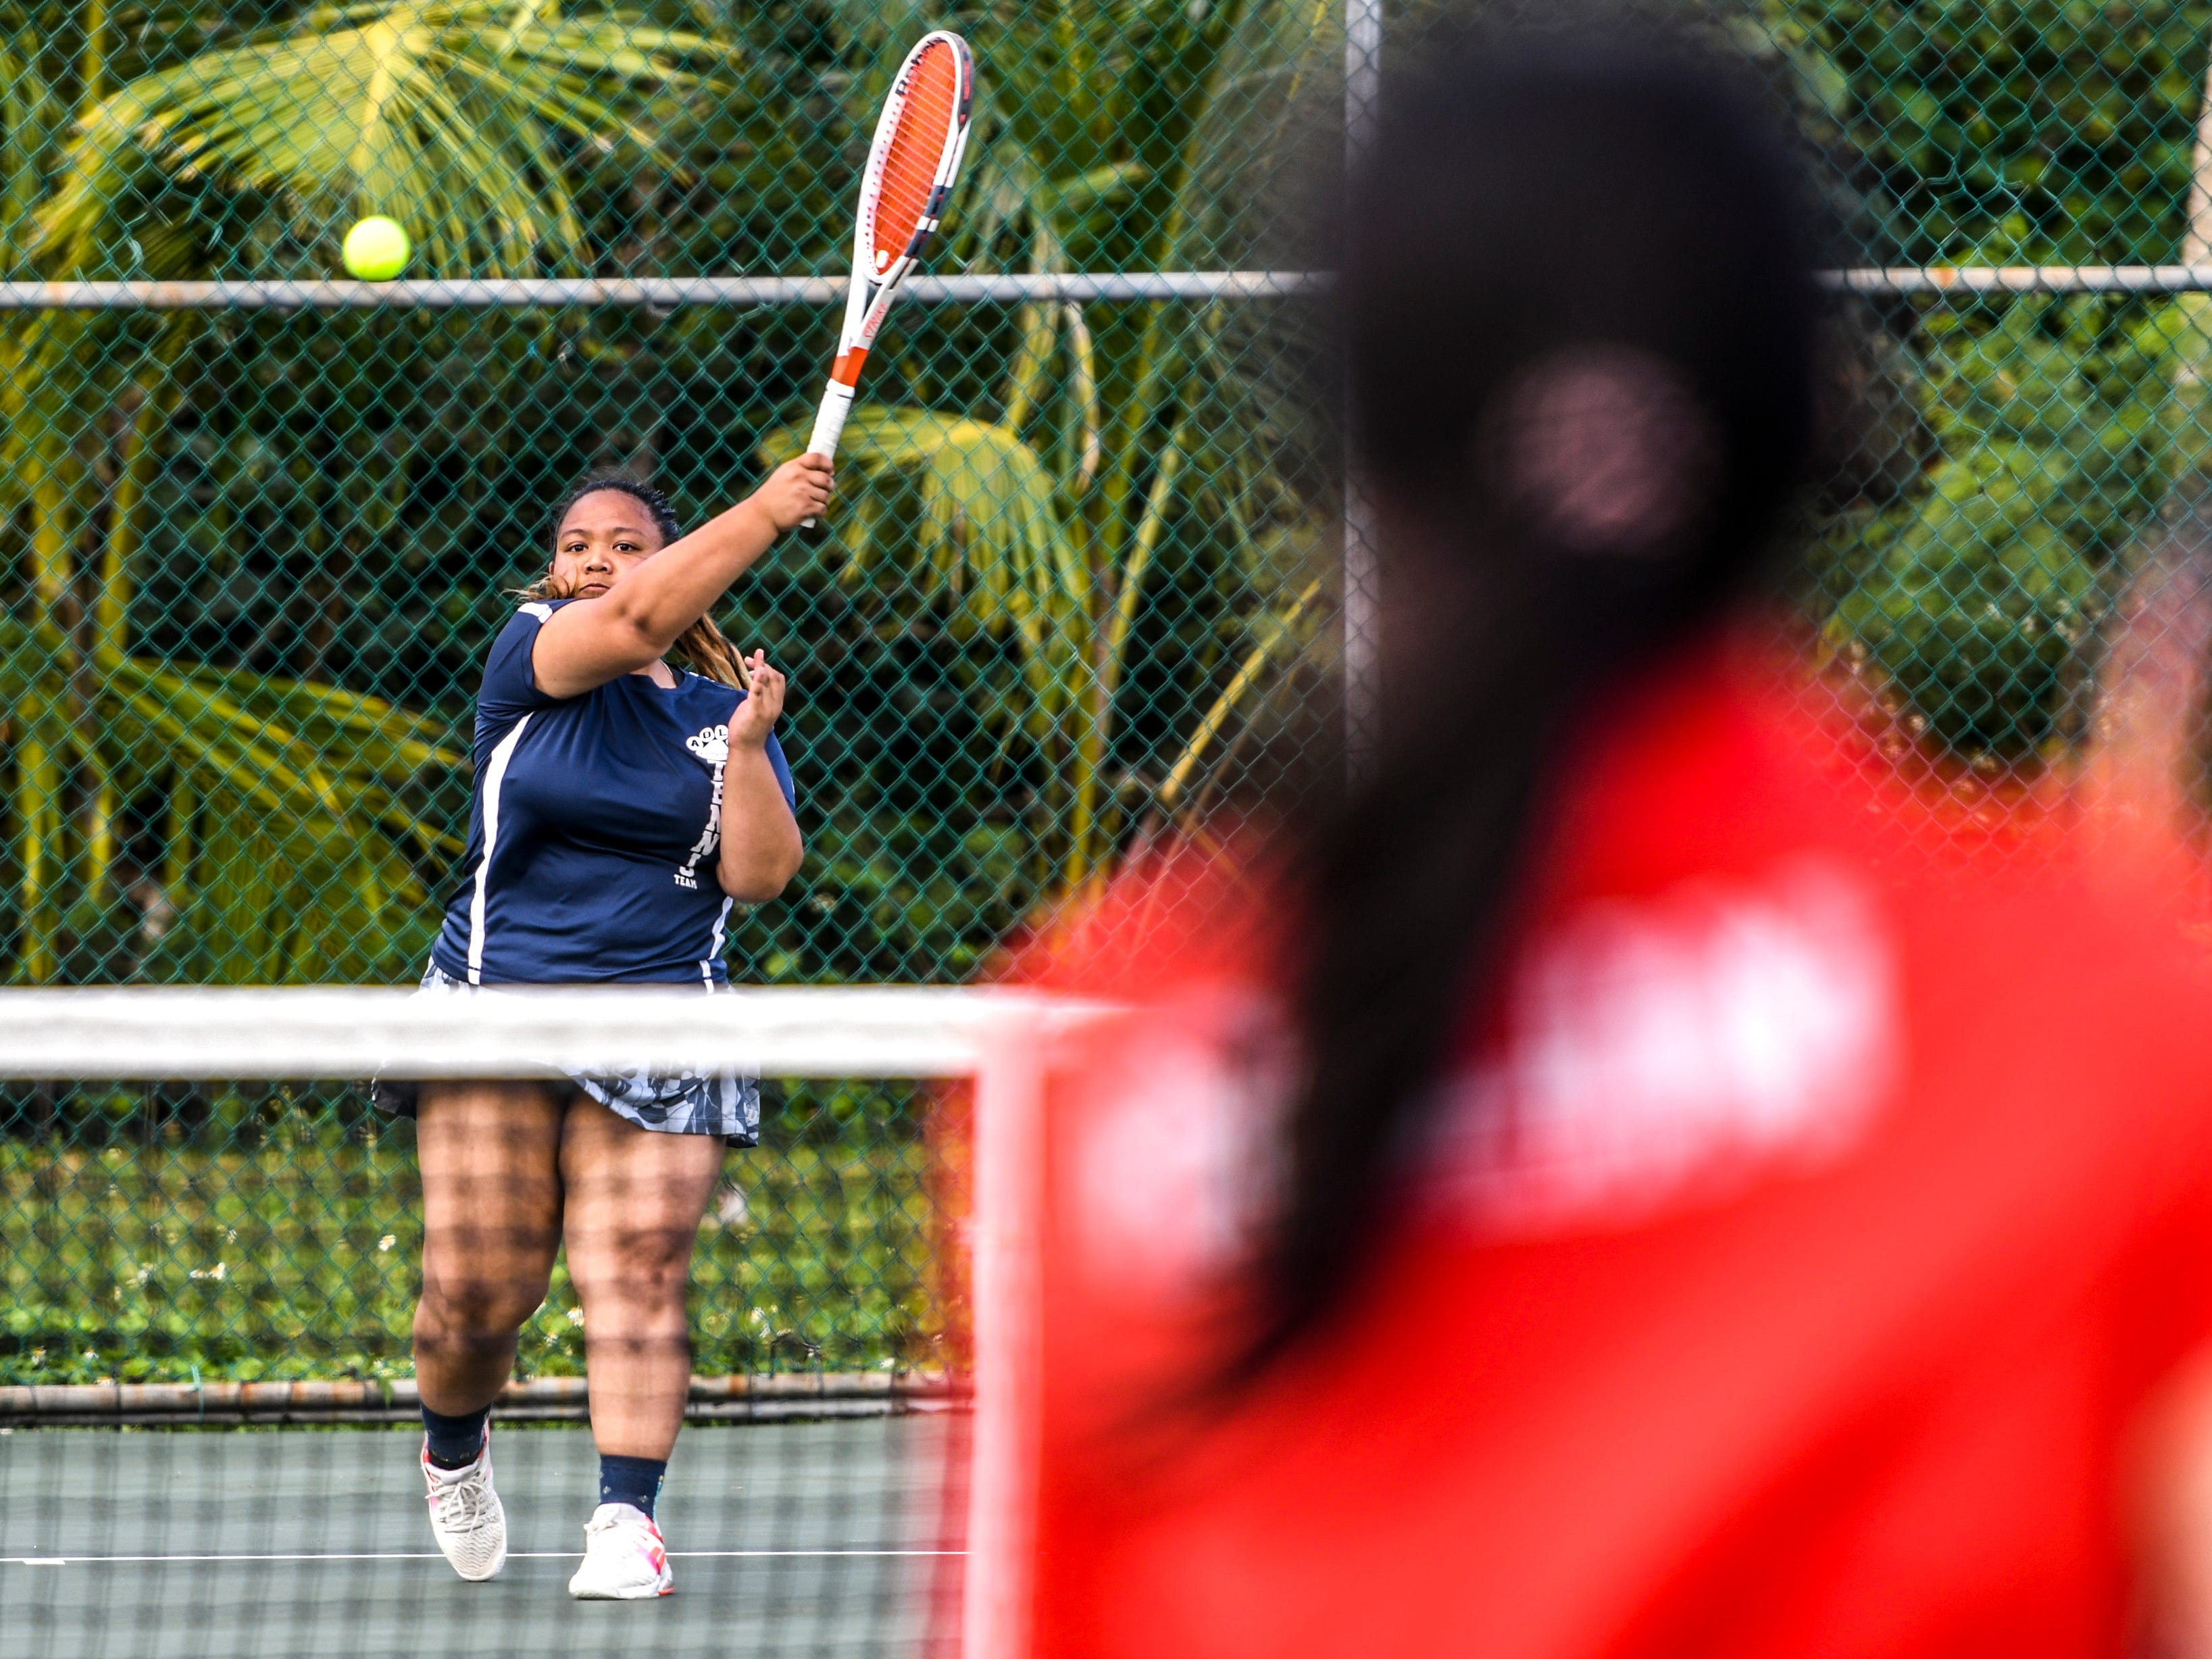 Academy of Our Lady Guam Cougars' Mika Alcantara answers back with forehand volley during an Interscholastic Athletic Association of Guam tennis singles match with St. John's Knights' Ayaka Lin at the Rick Ninete Tennis Center in Hagåtna on Thursday, Jan. 31, 2019.